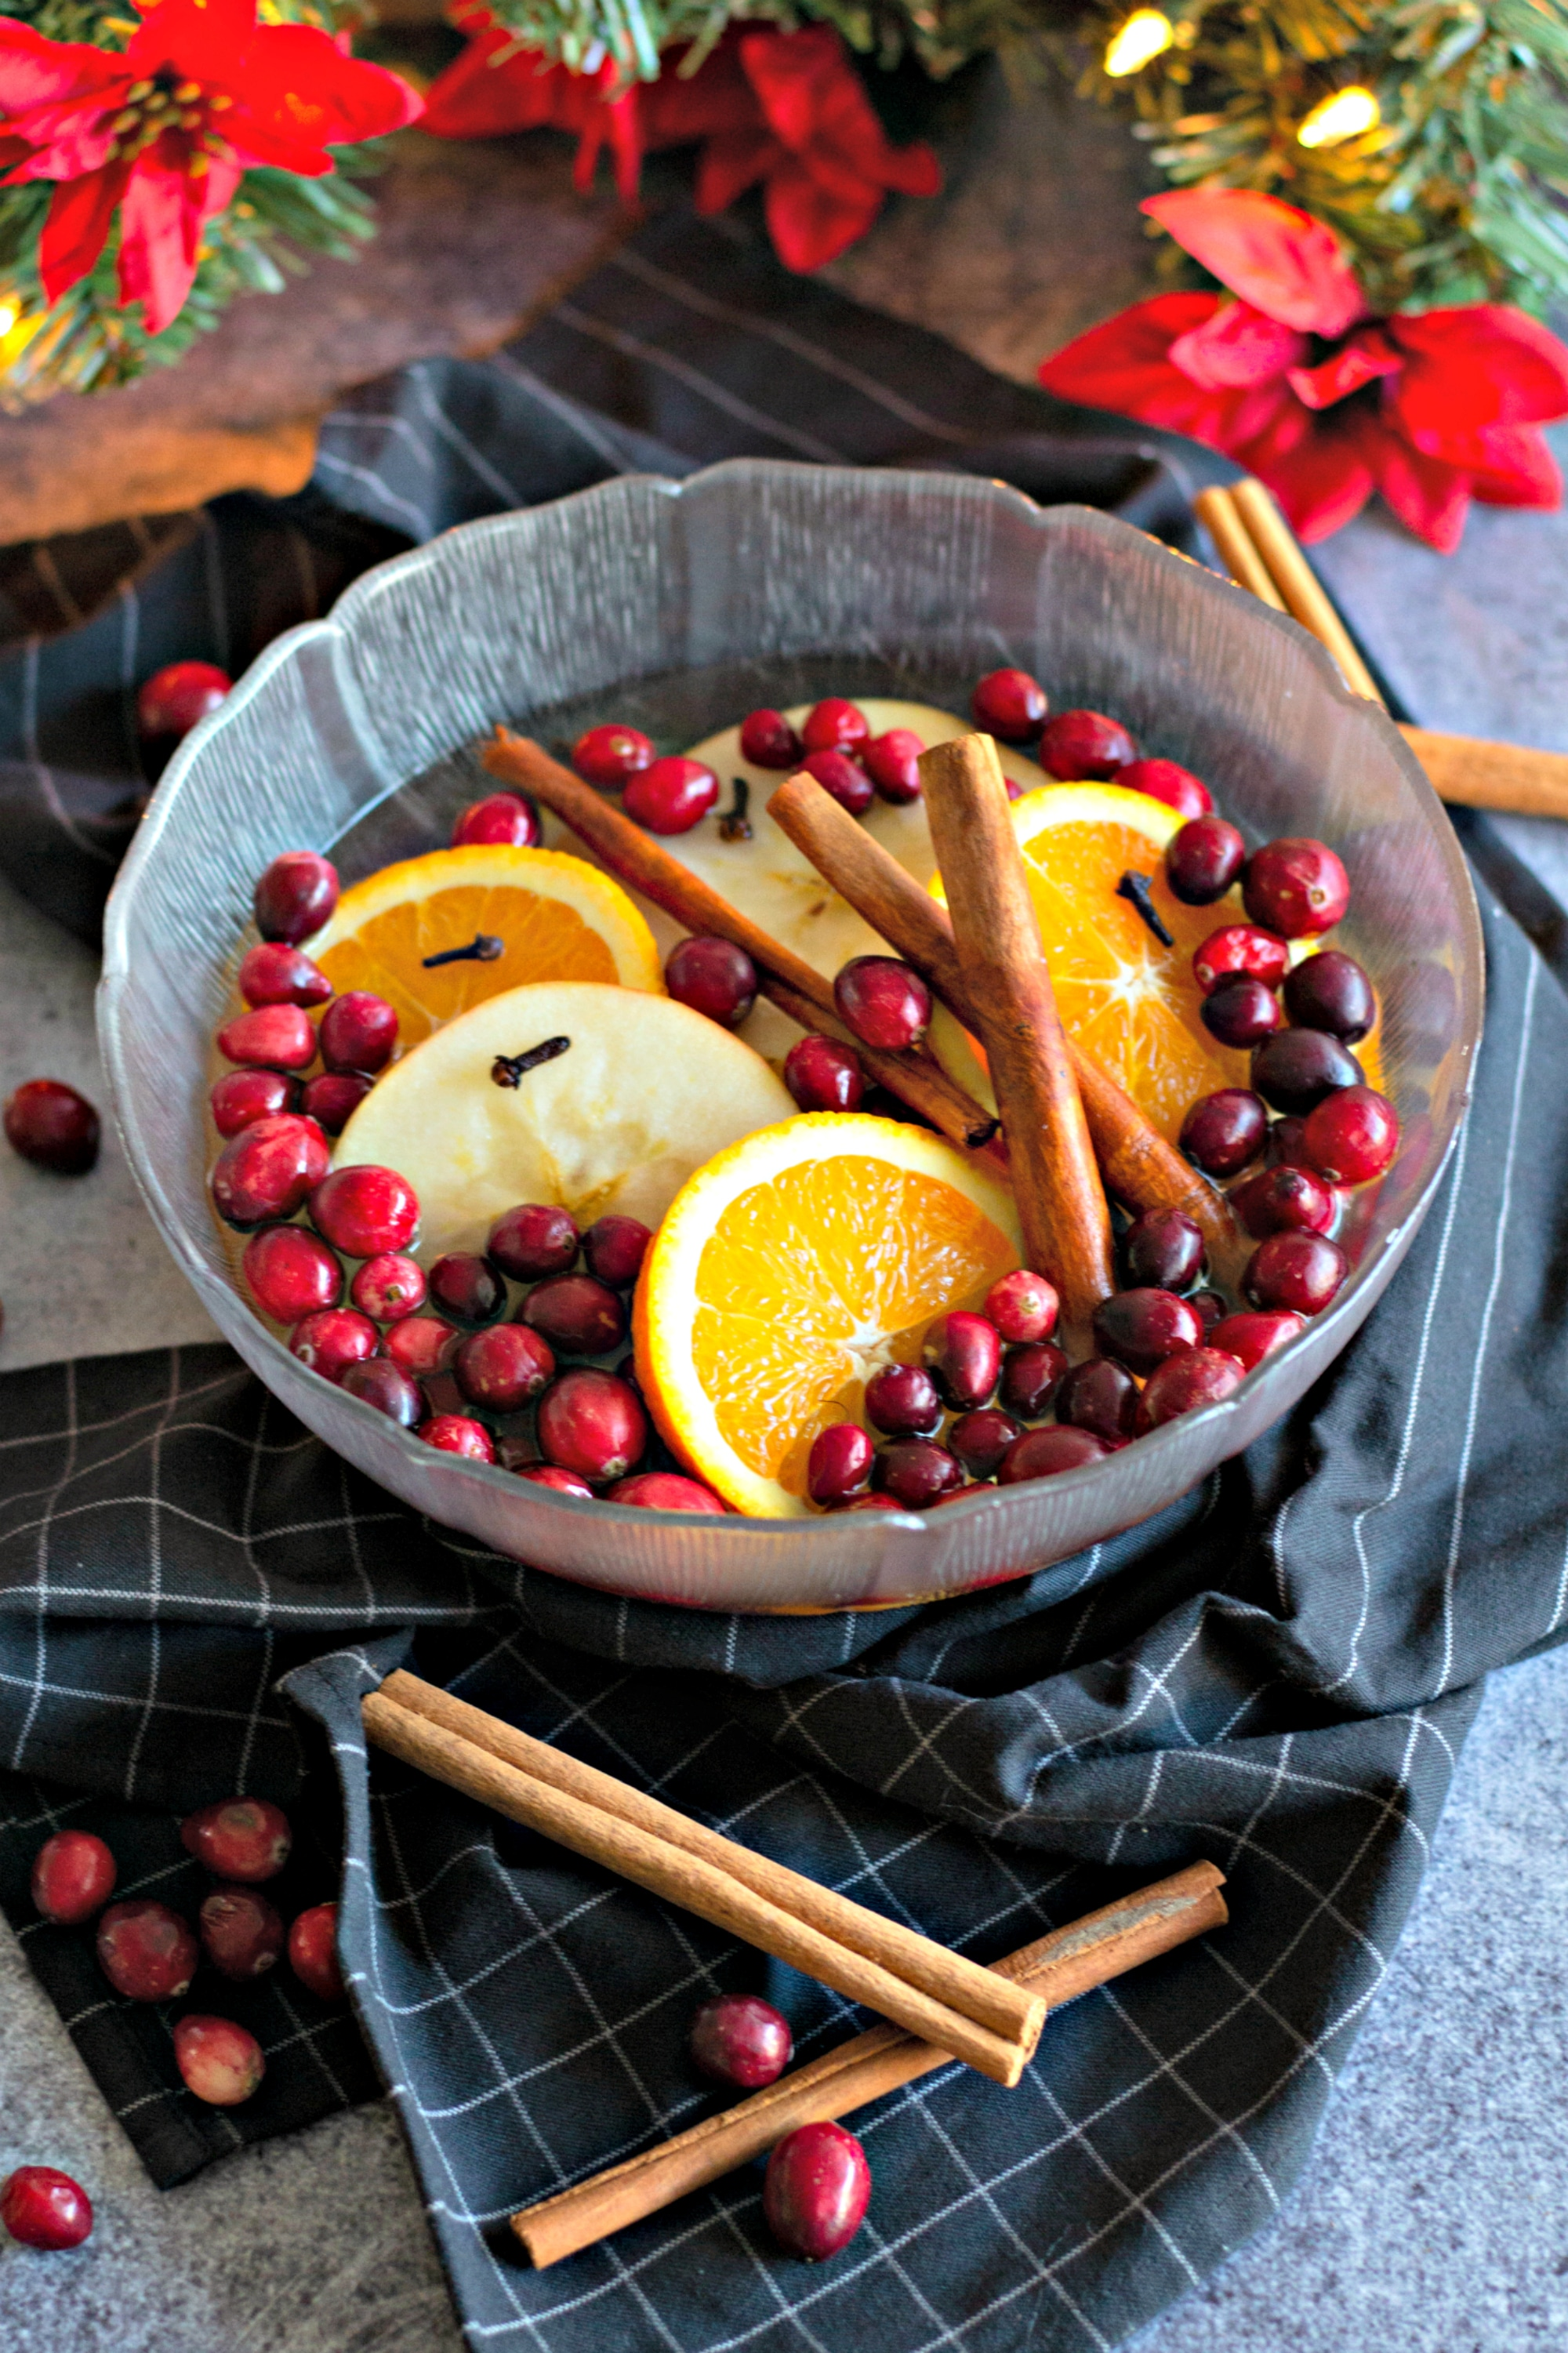 A large bowl filled with cranberries, oranges, cinnamon sticks to make stovetop potpourri